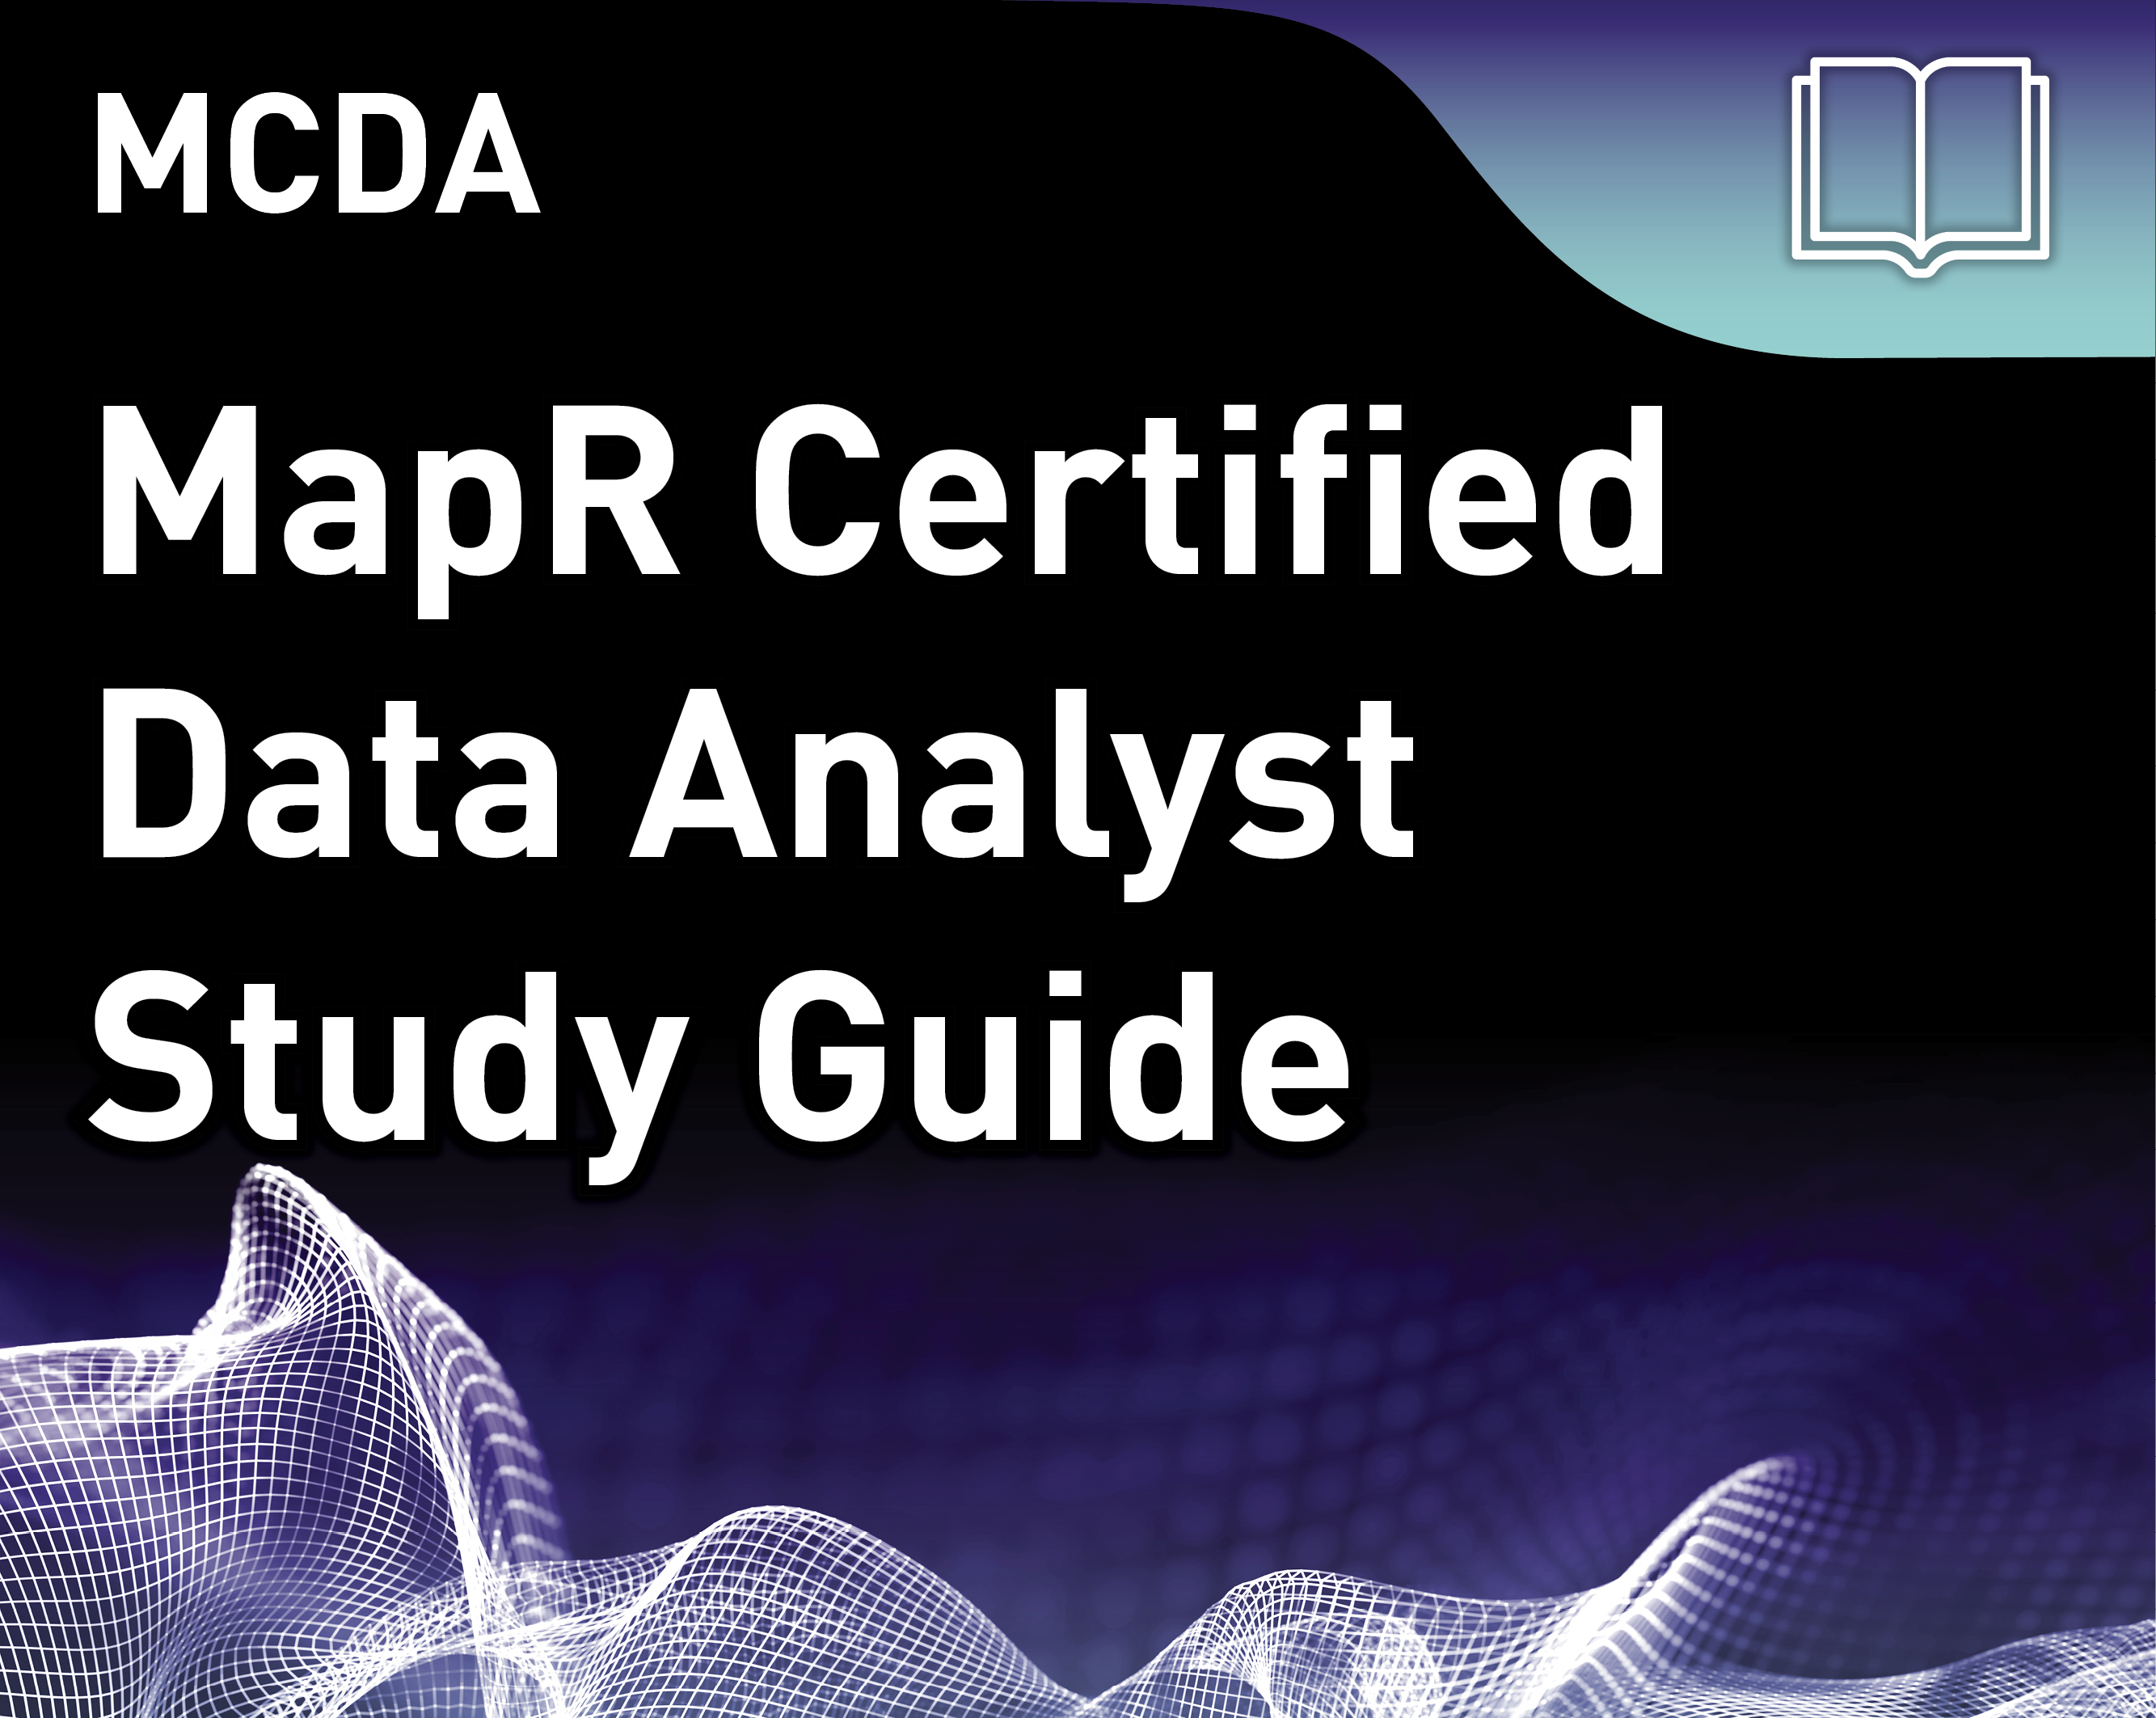 MCDA Study Guide - MapR Certified Data Analyst (v1)